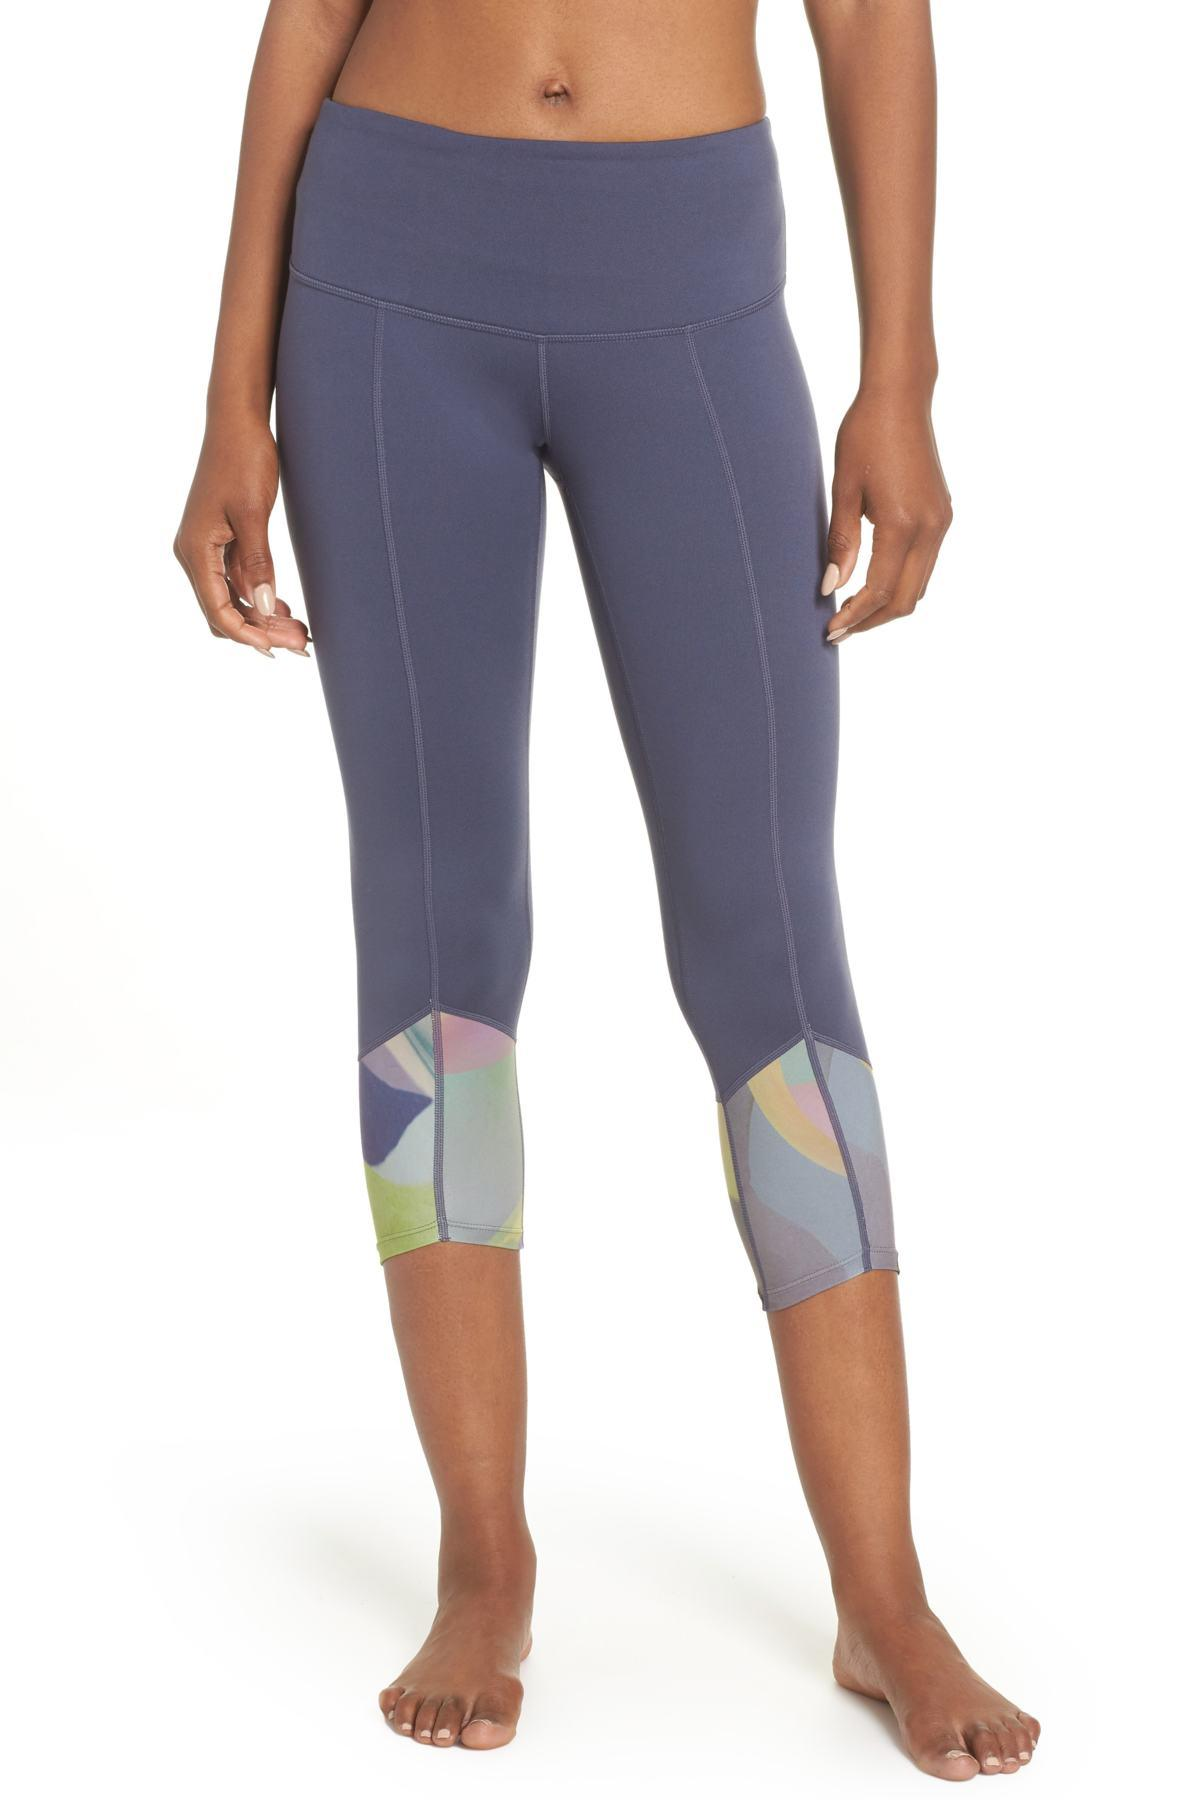 967606fb2d676 Lyst - Zella Re-center Crop Recycled Leggings in Gray